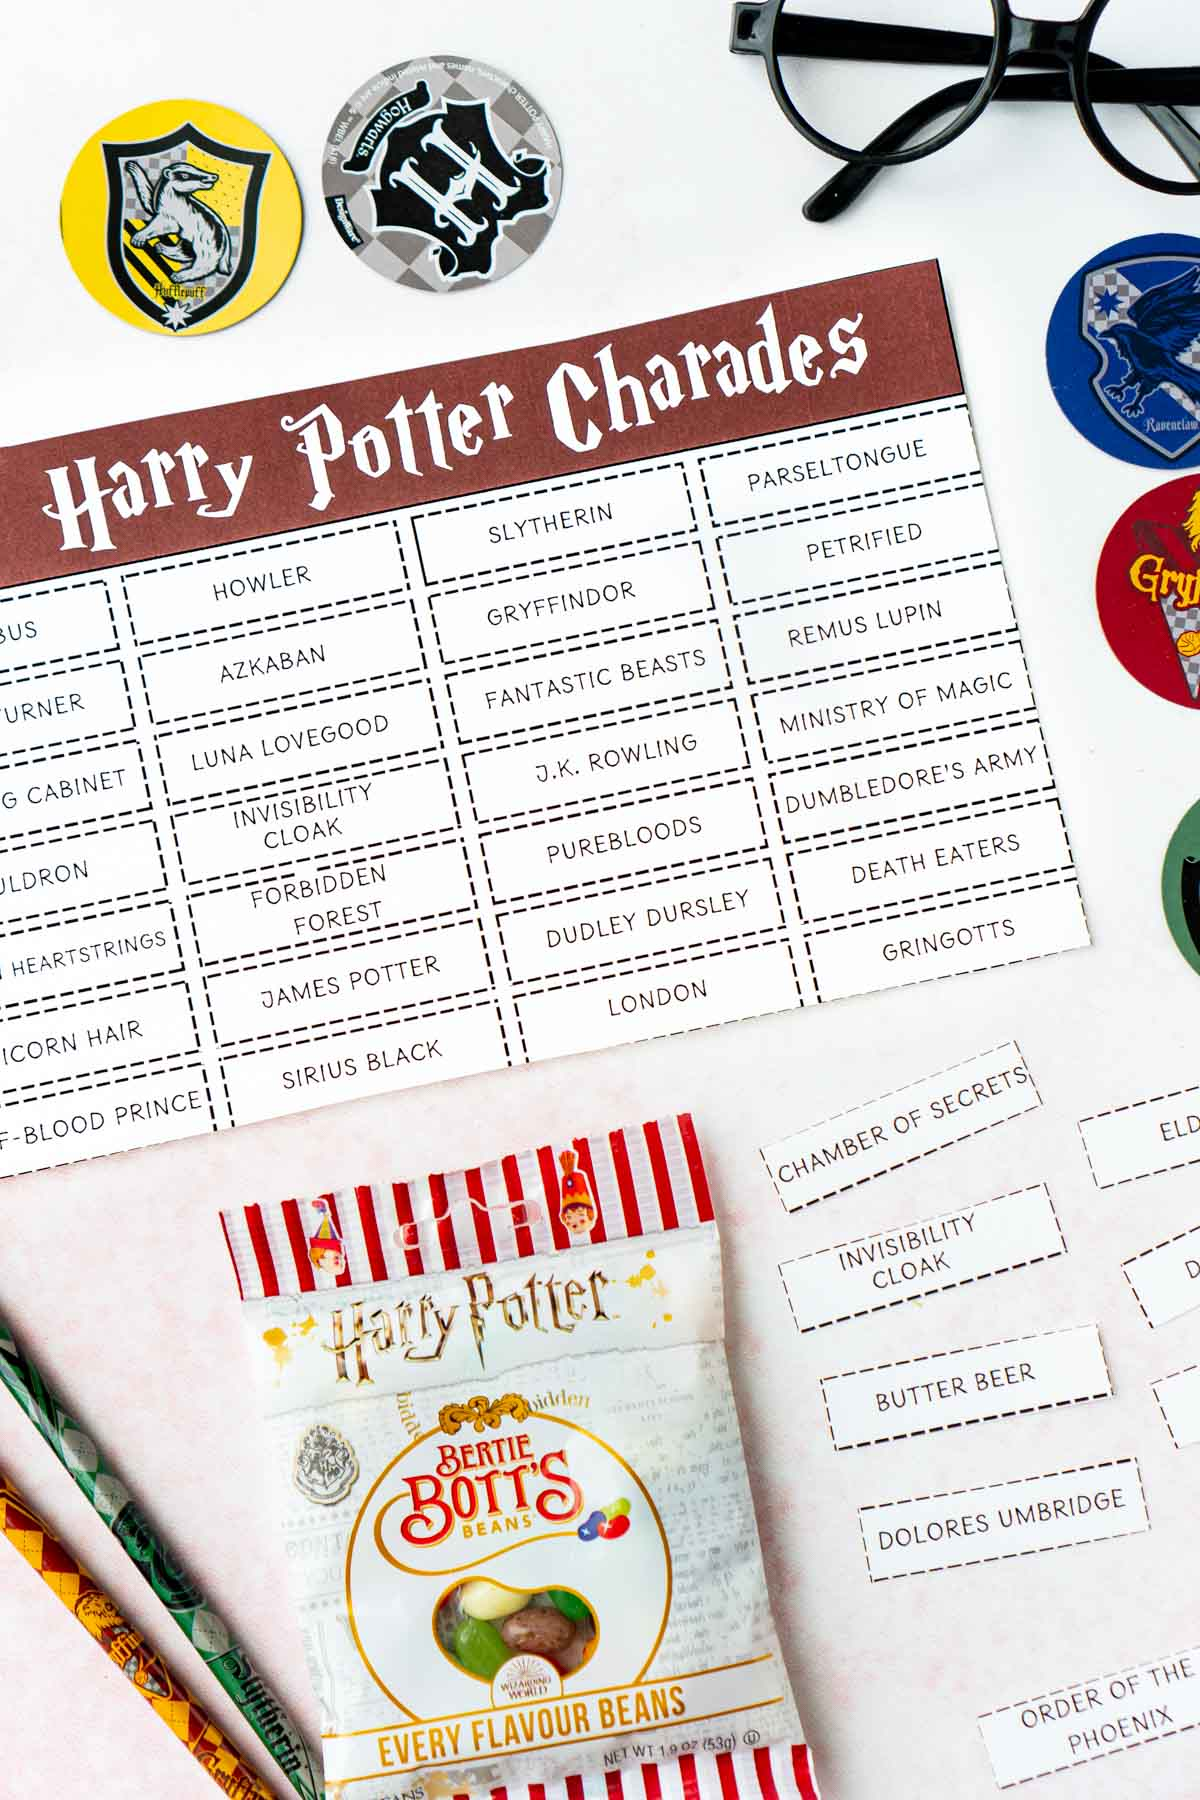 Harry Potter charades words with Harry Potter jelly beans and pencils